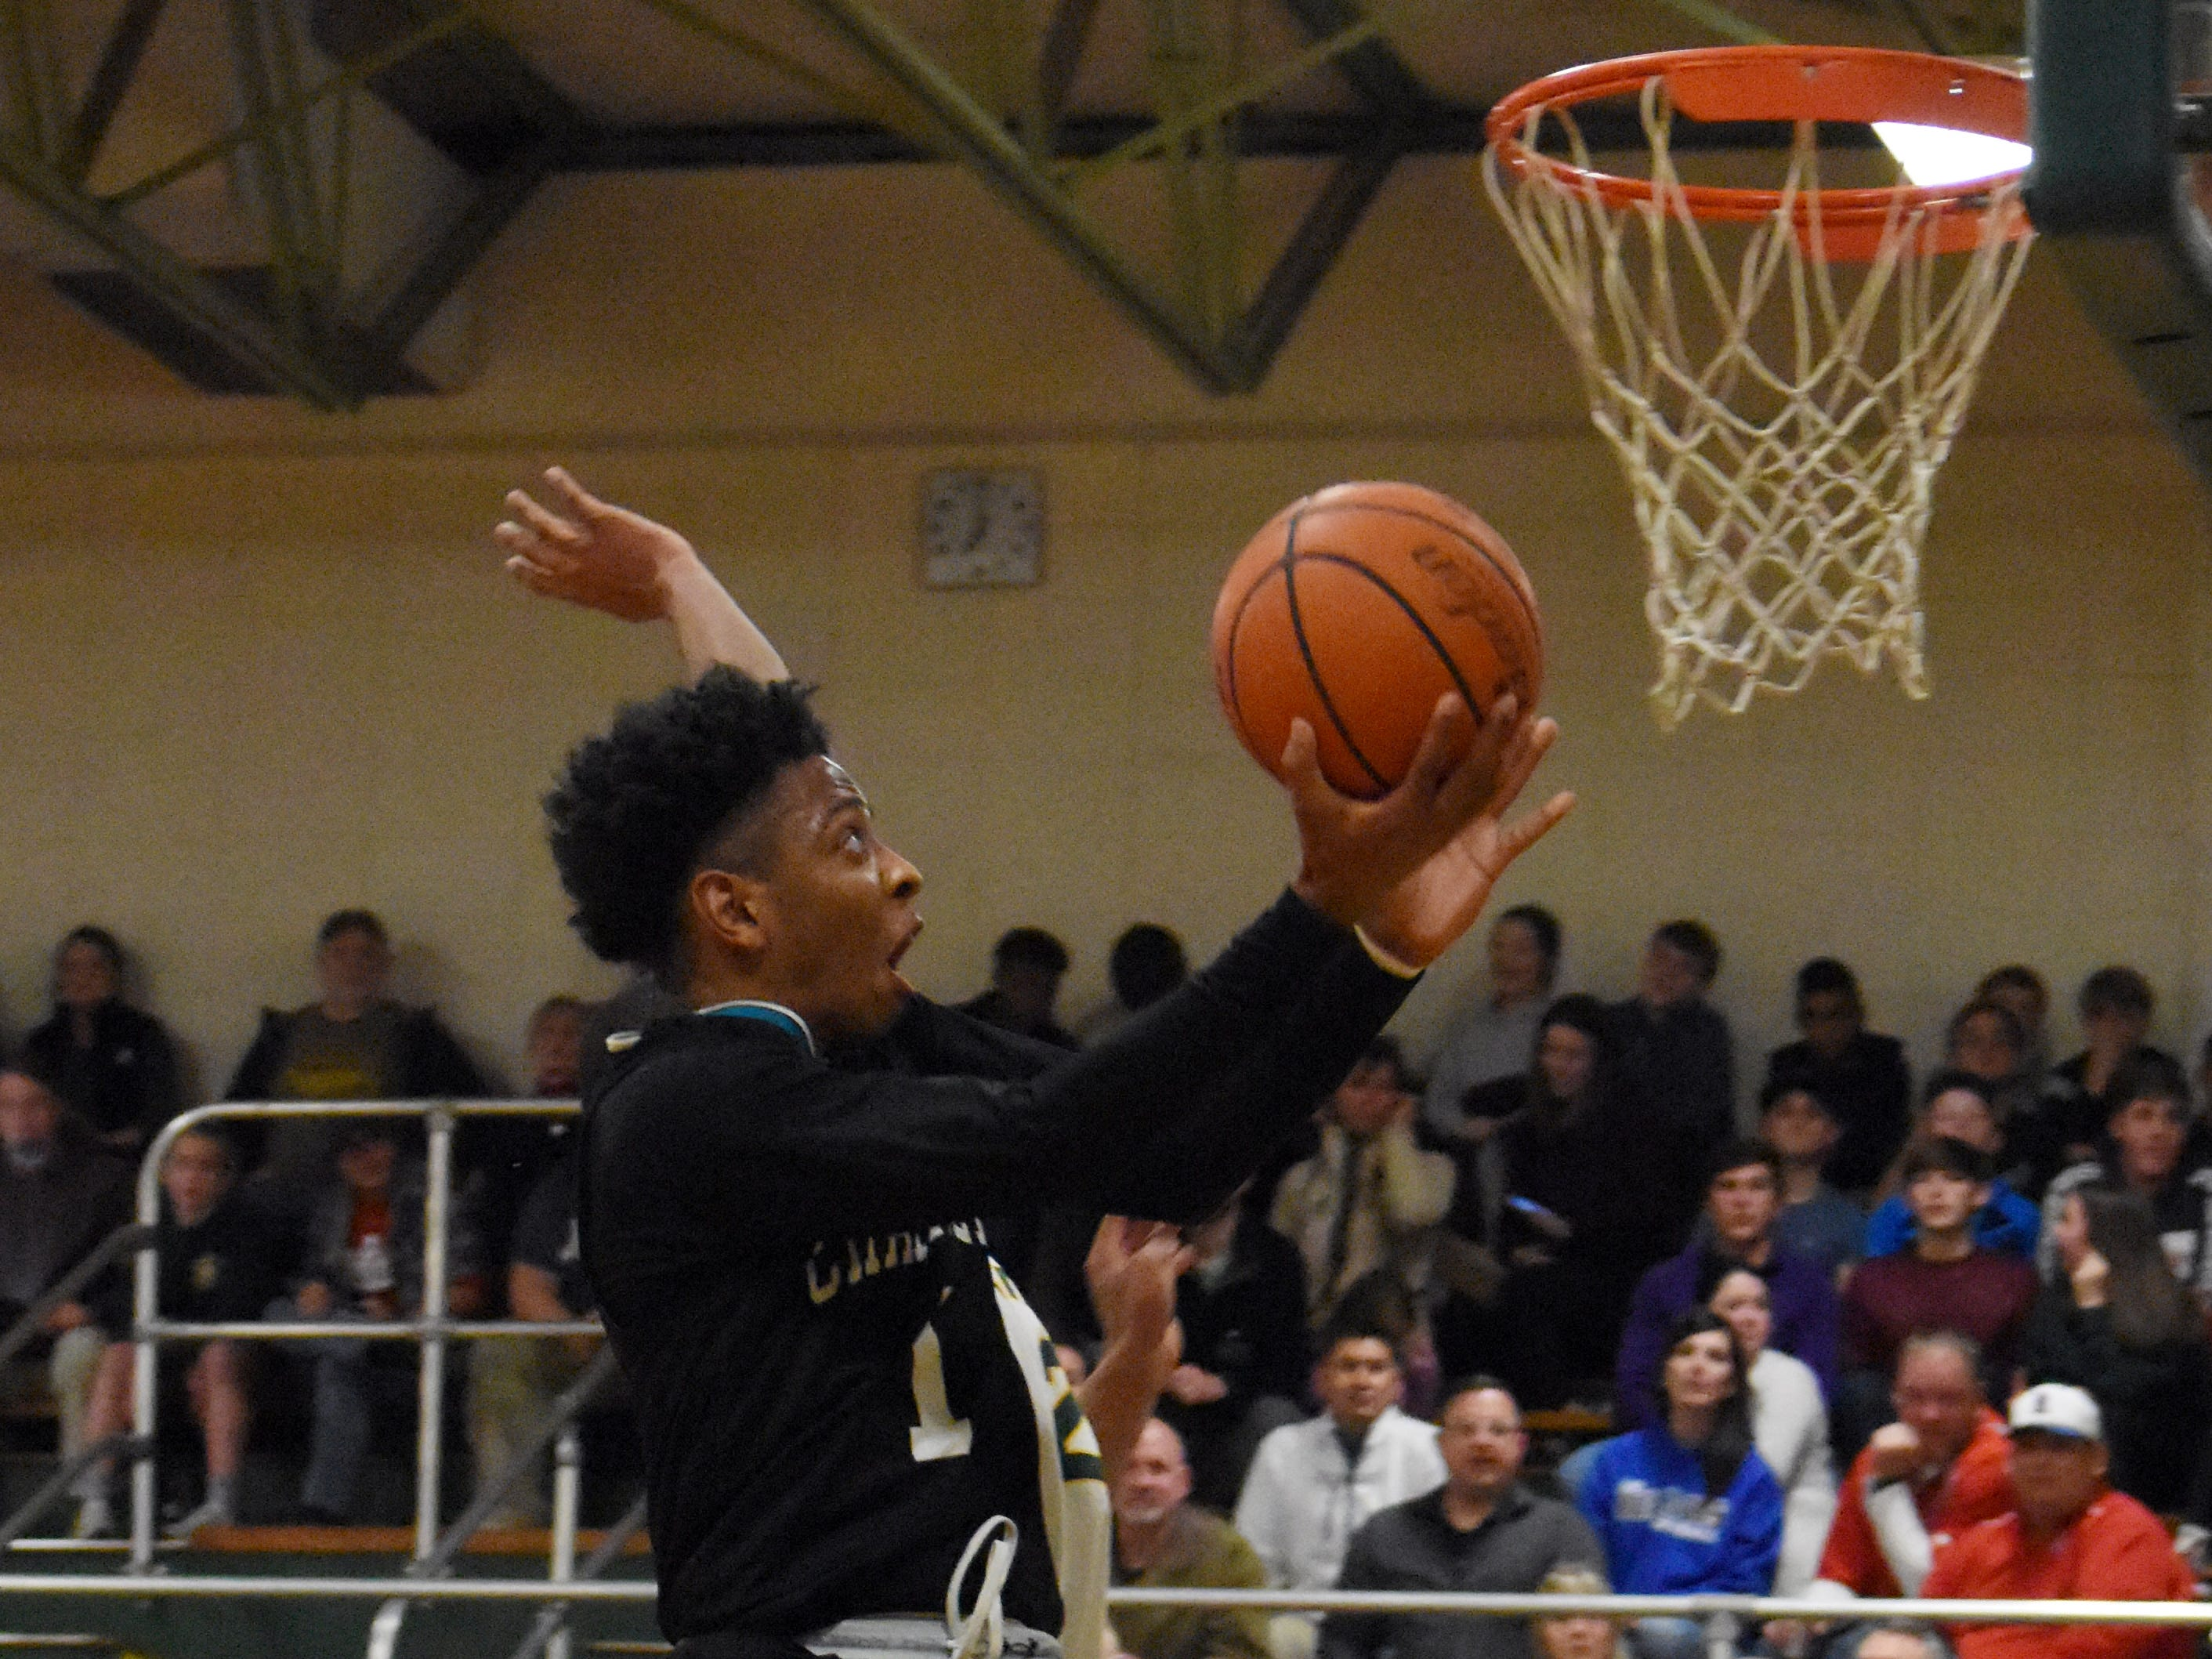 Avoyelles Charter senior Aaron McGhee (1) goes up for a layup against Holy Savior Menard Friday, Feb. 8, 2019.